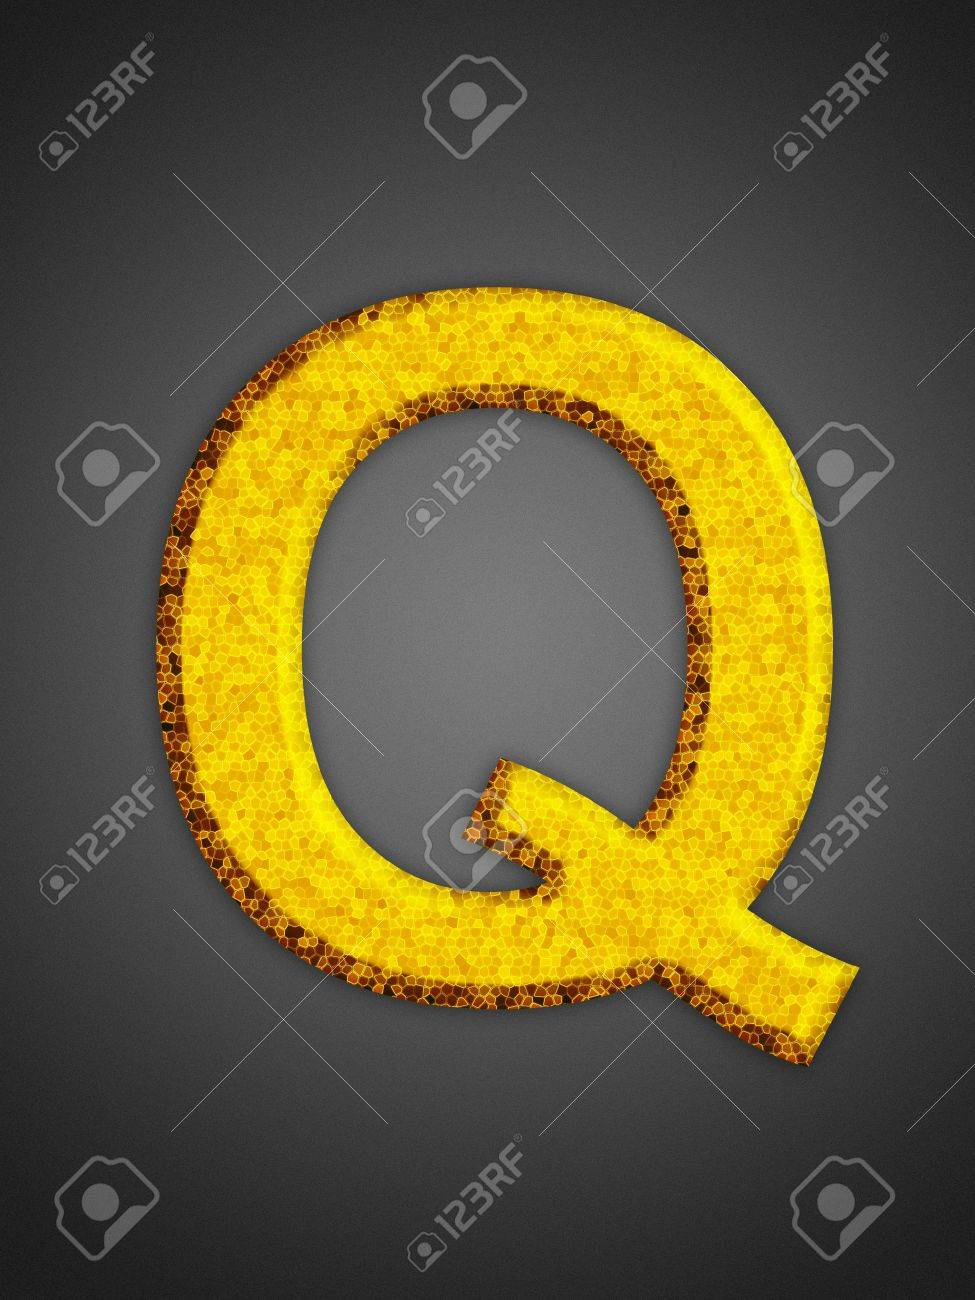 Beautiful abstract party symbol. Yellow glowing font. Stock Photo - 16876889